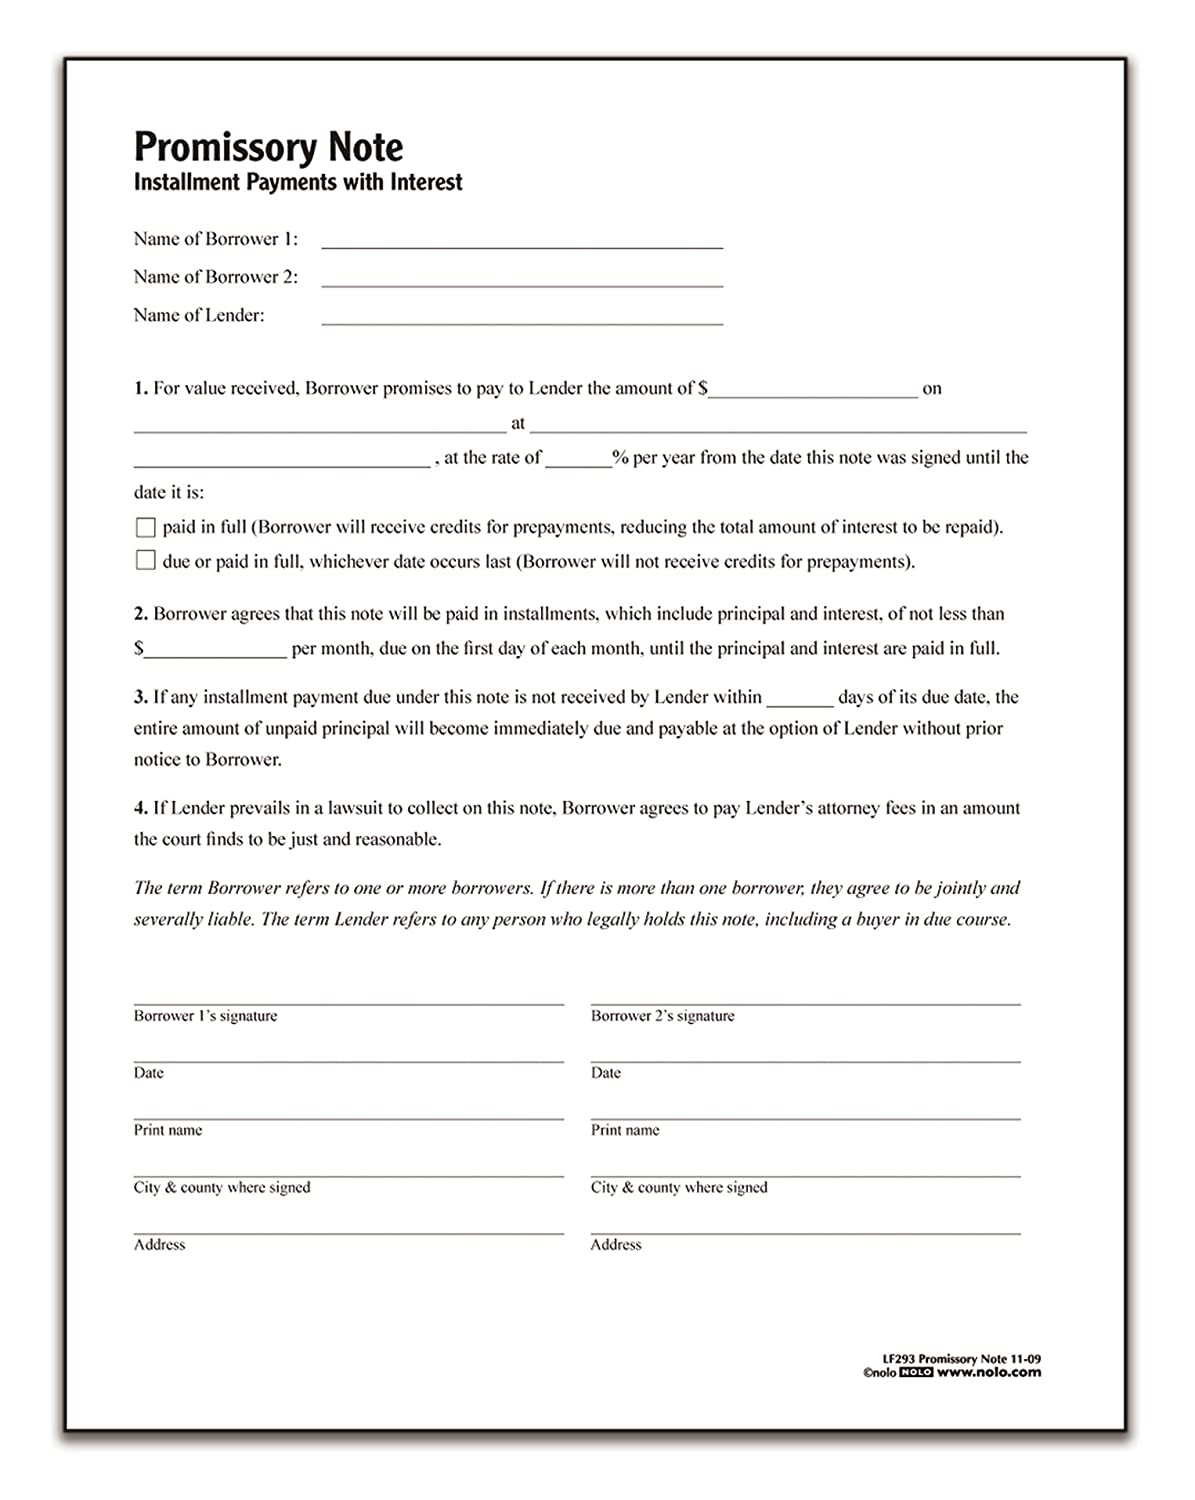 Amazoncom Adams Promissory Note Forms And Instructions Lf293